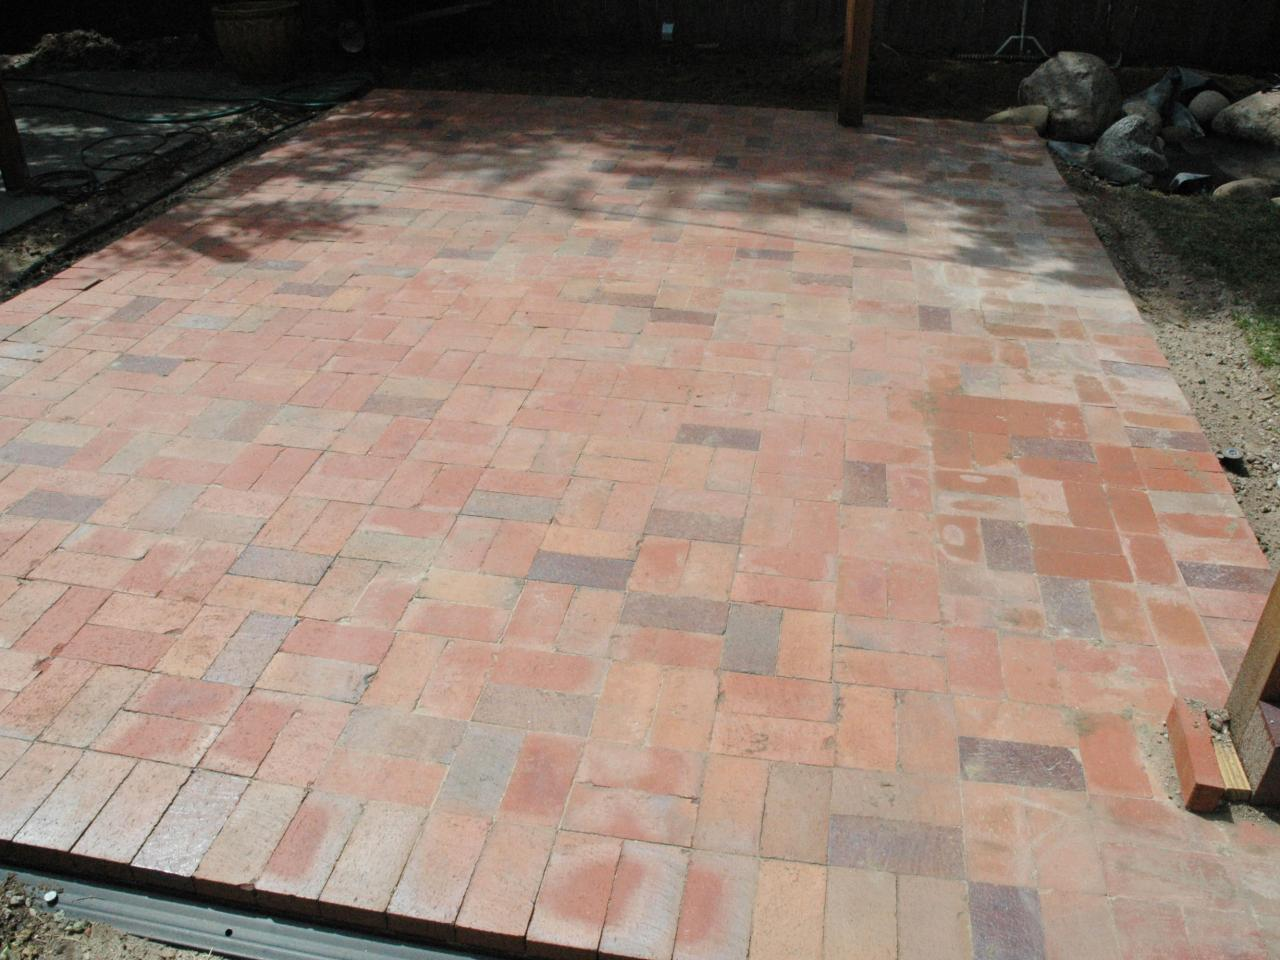 How To Lay A Brick Paver Patio Howtos DIY - Flagstone patio patterns